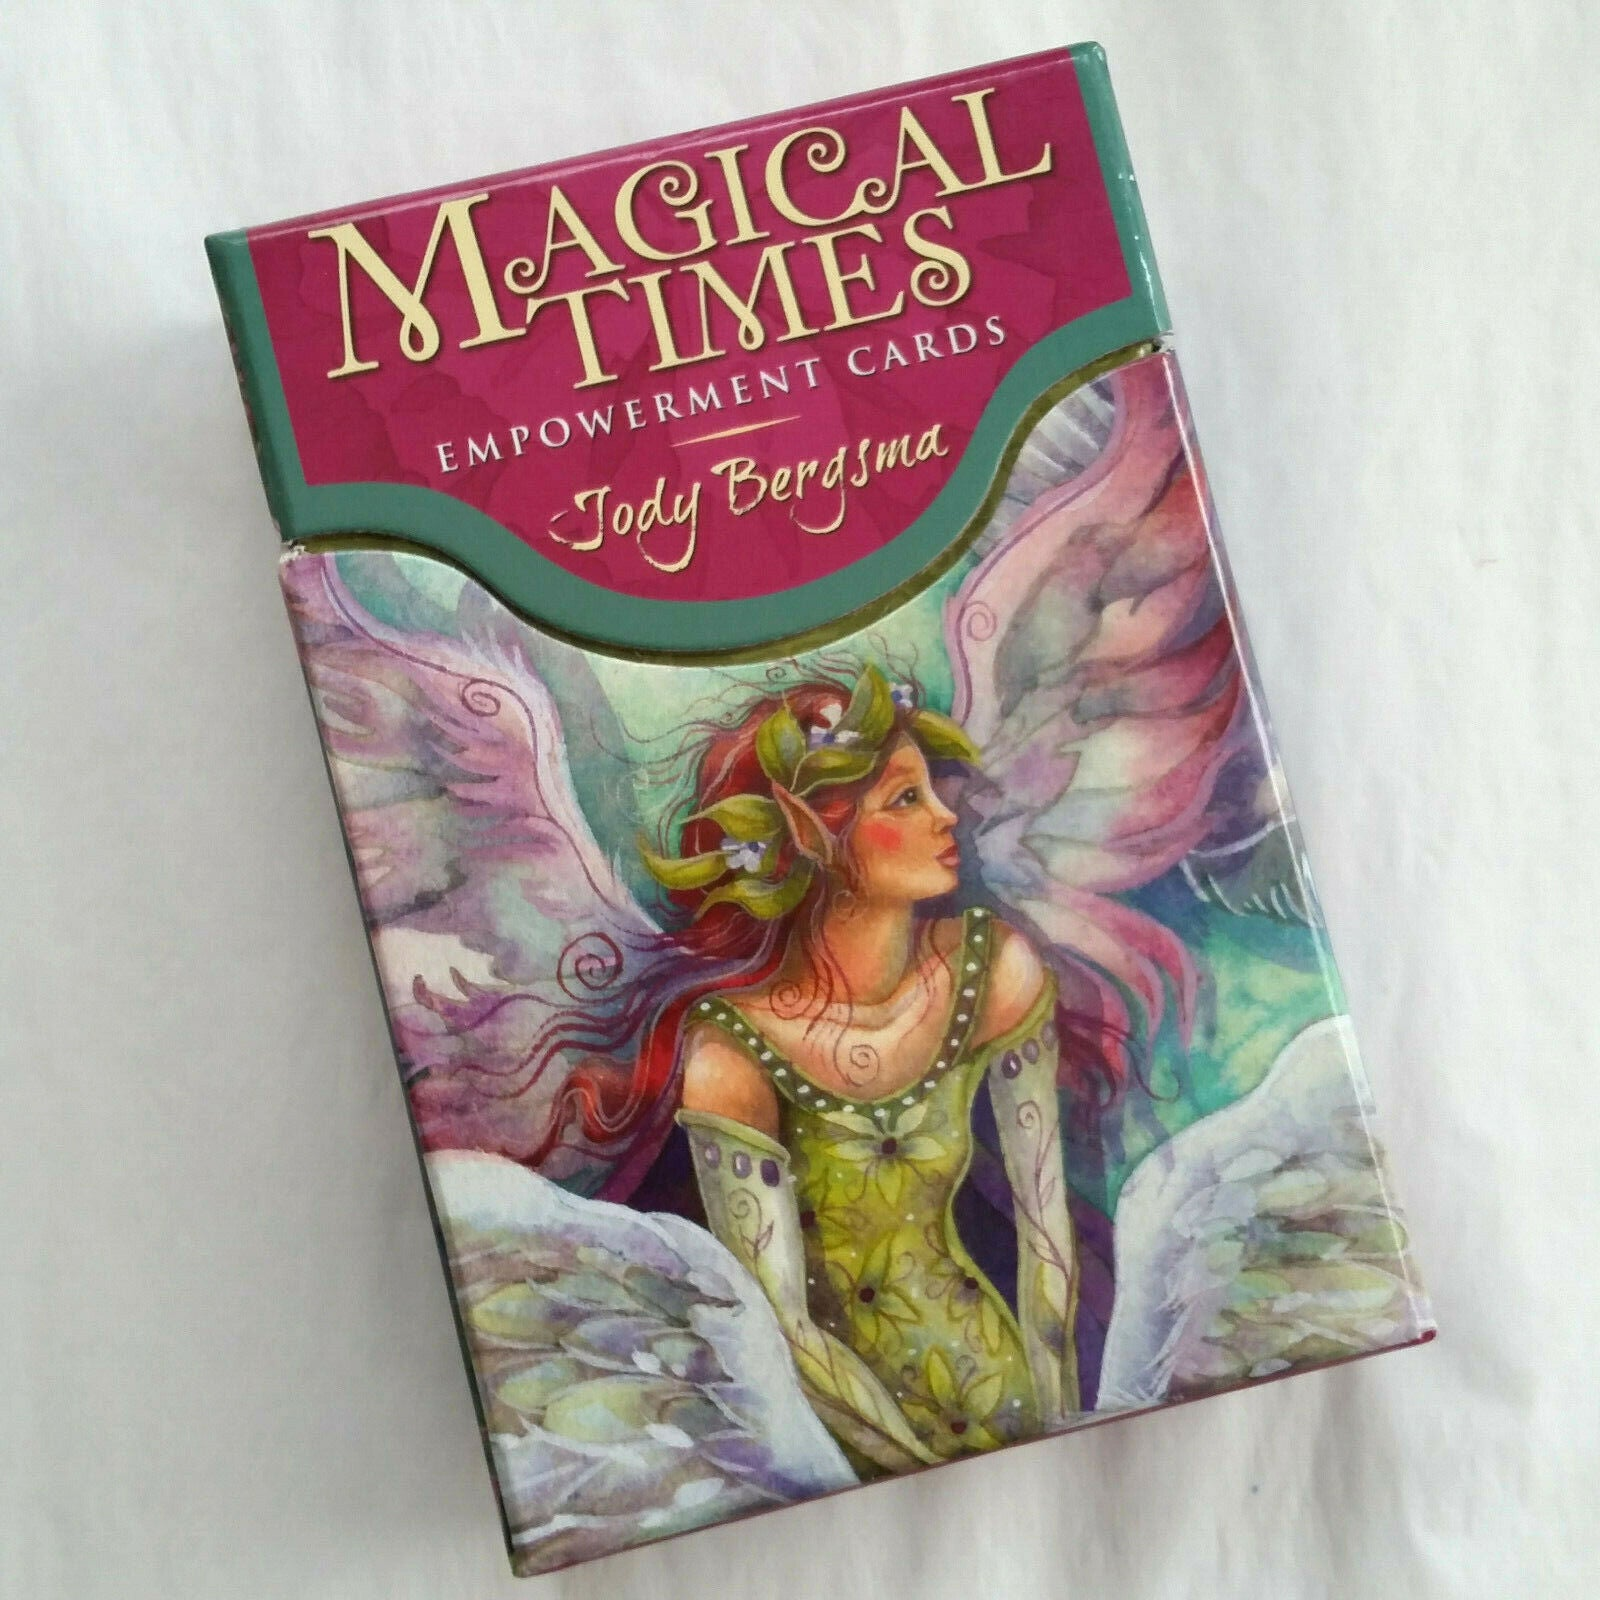 Magical Times Empowerment Oracle Cards Deck (Jody Bergsma)